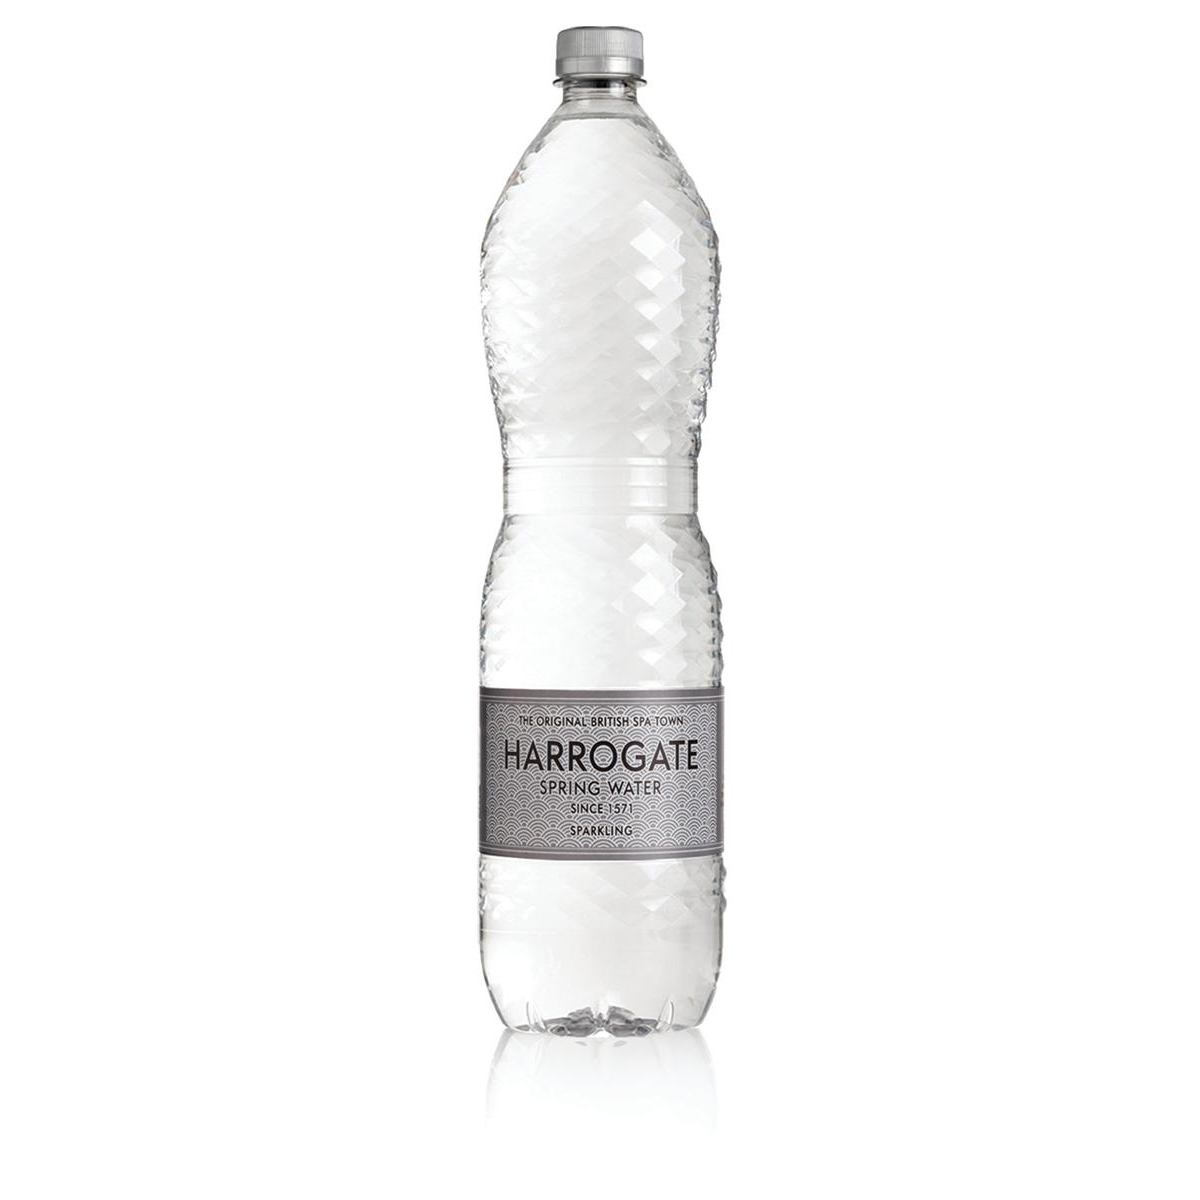 Harrogate Sparkling Water Plastic Bottle 1.5 Litre Ref P150122C [Pack 12]